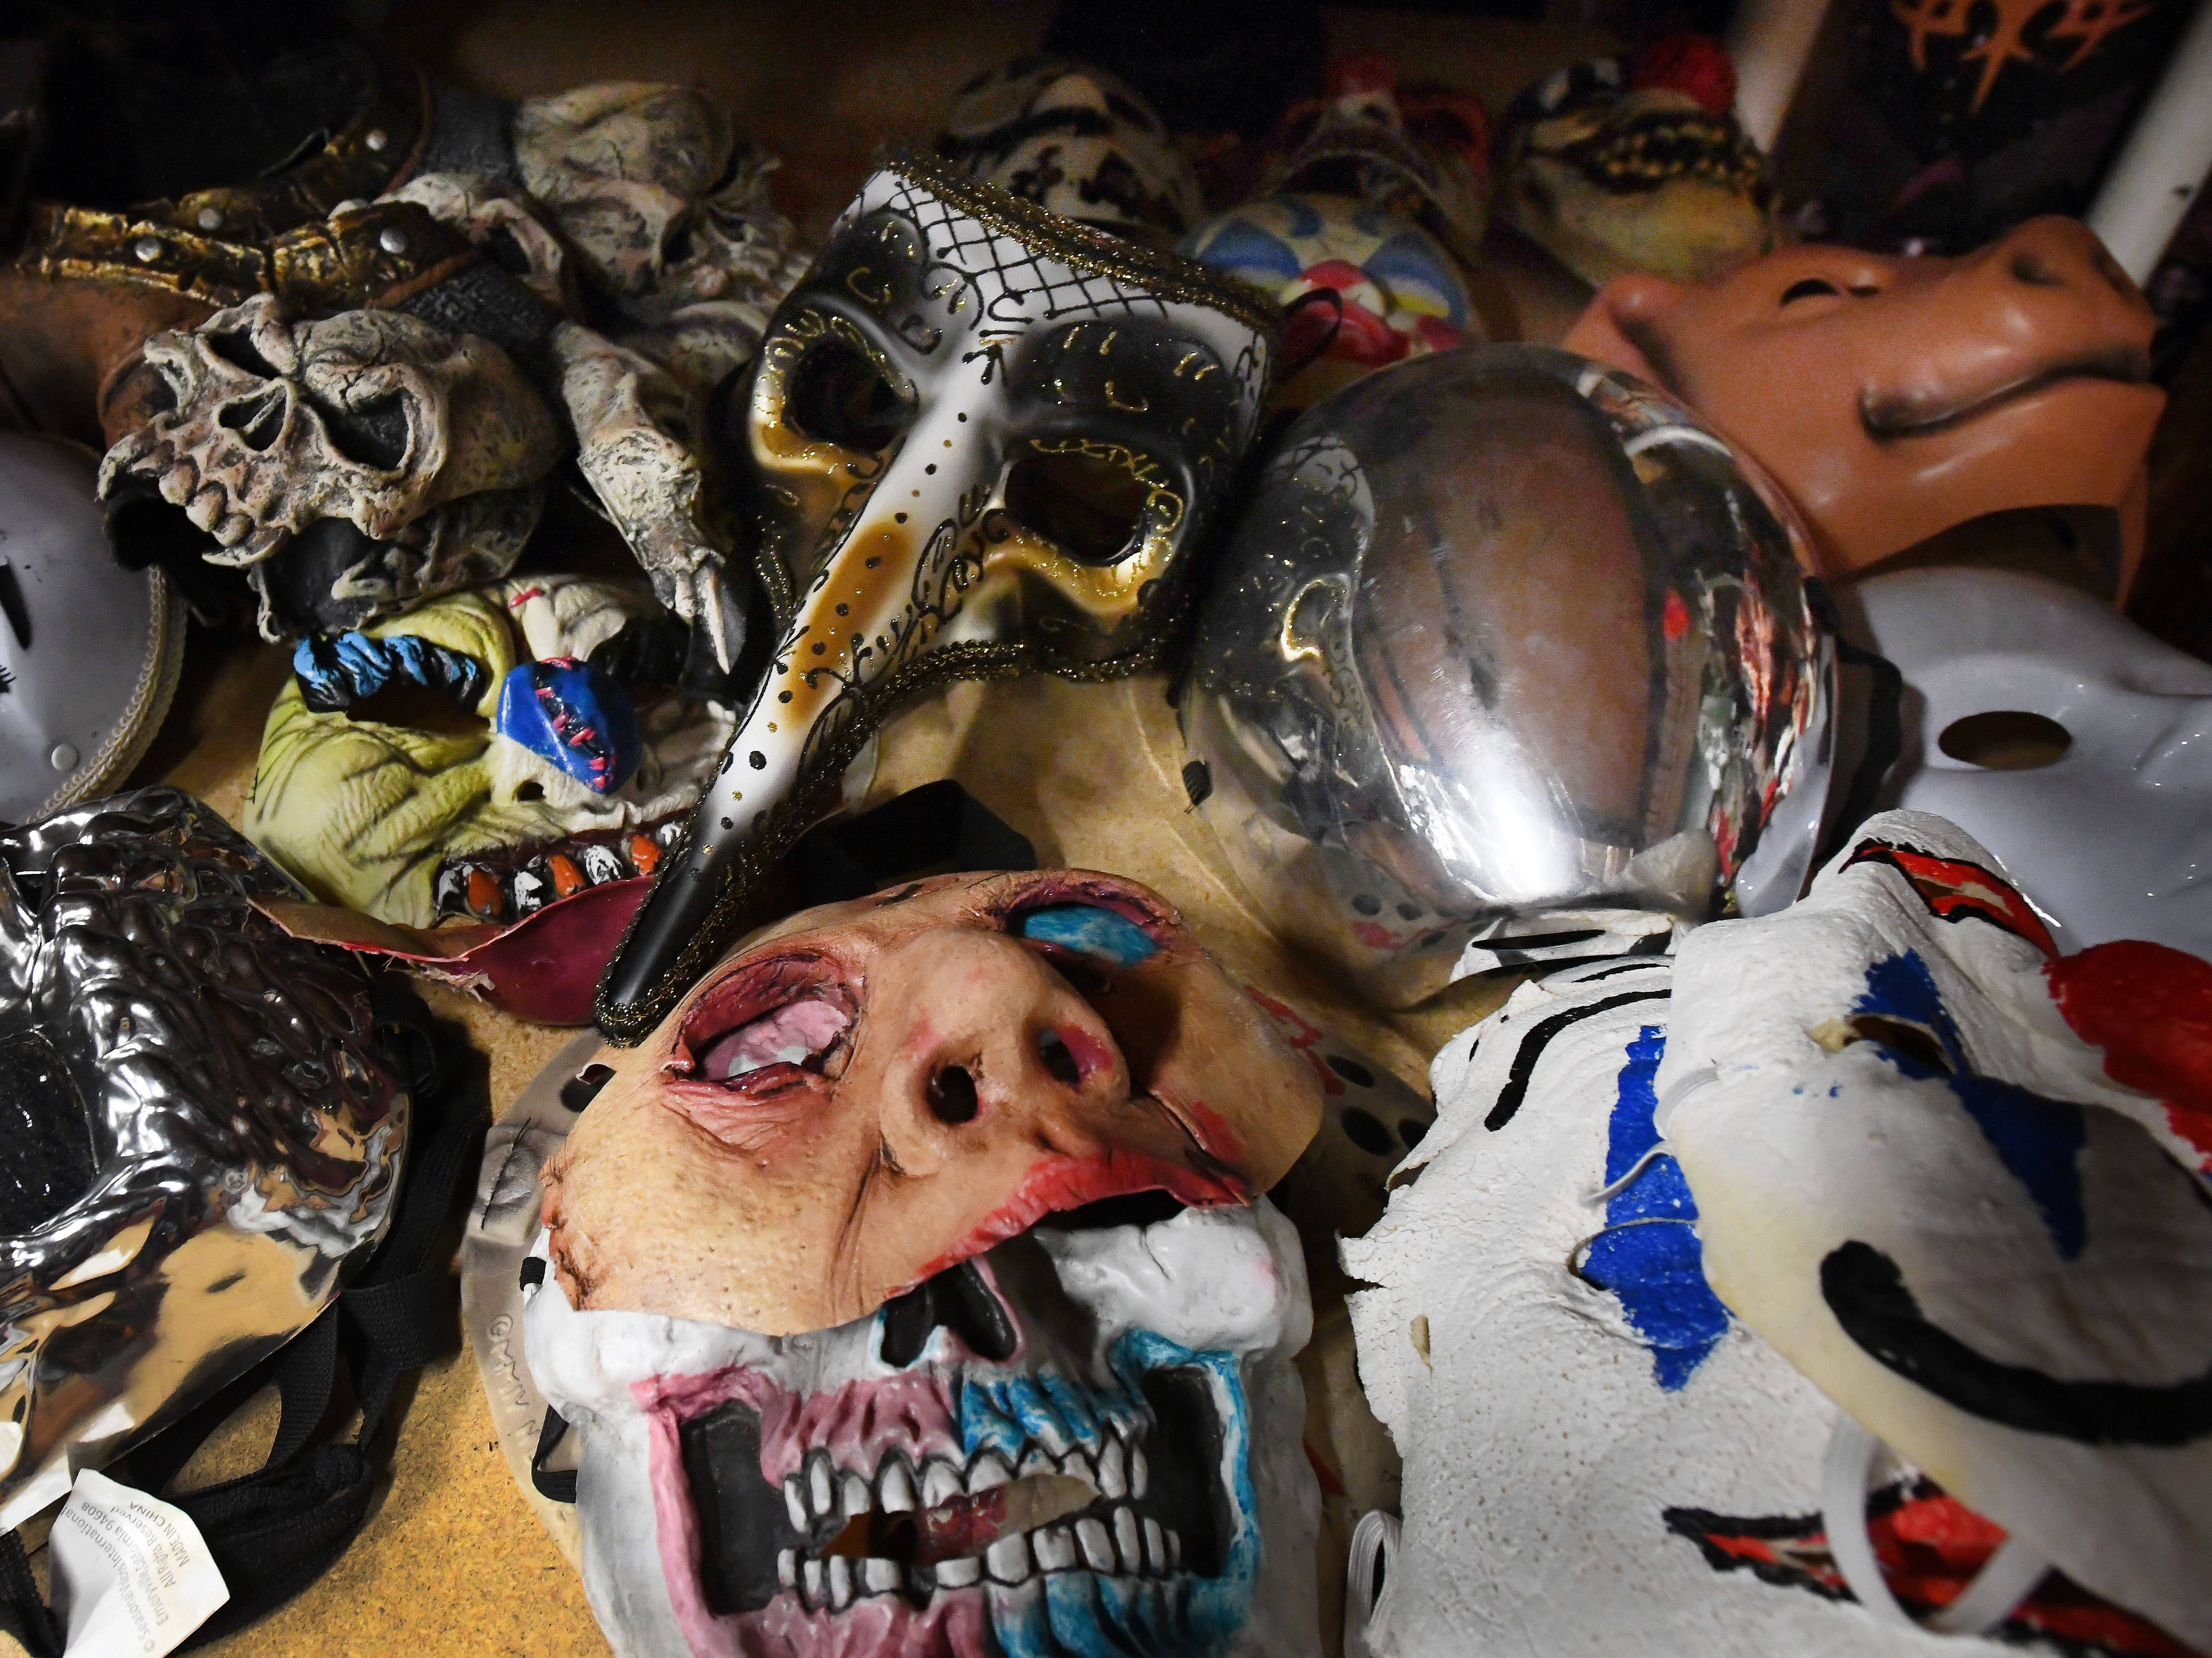 Violent J, aka Joseph Bruce of Insane Clown Posse, shows off costume storage where outfits and various paraphernalia is stored from their elaborate shows and tours.